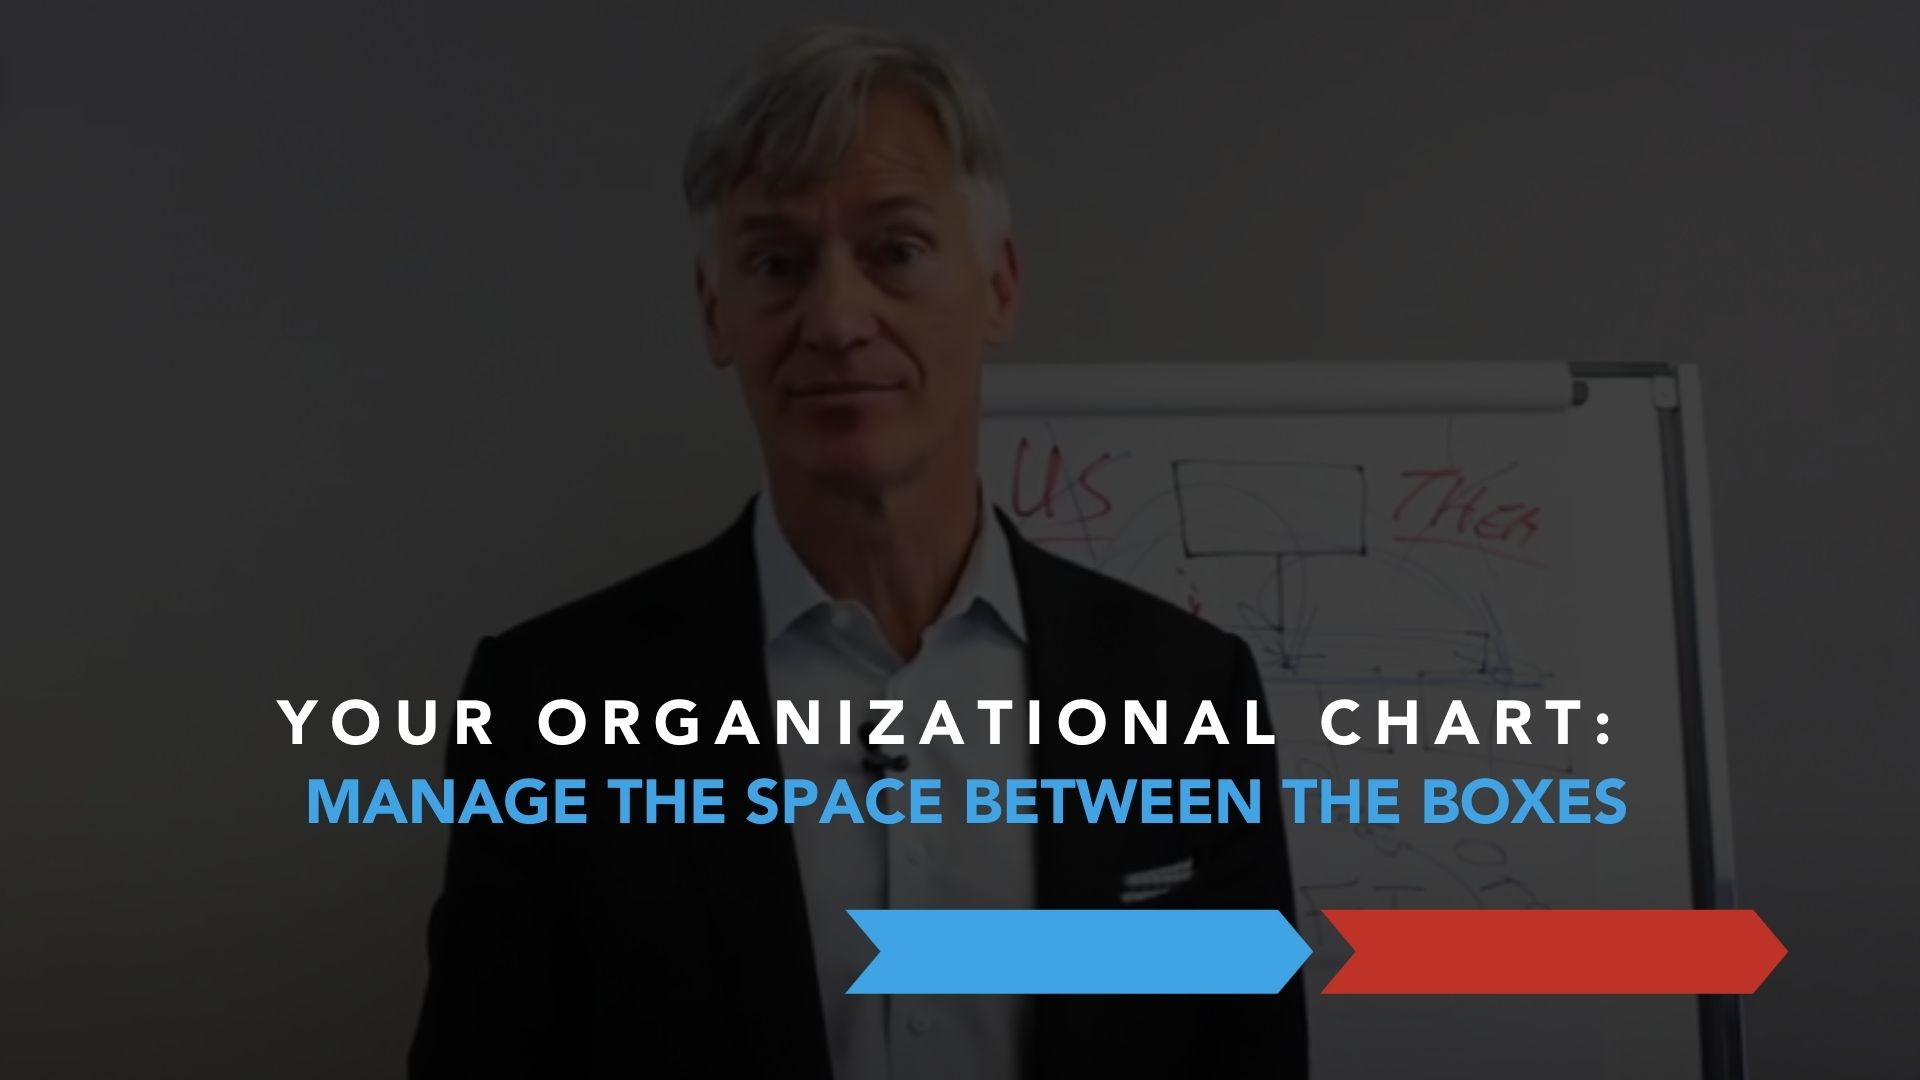 Your Organizational Chart: Manage the space between the boxes